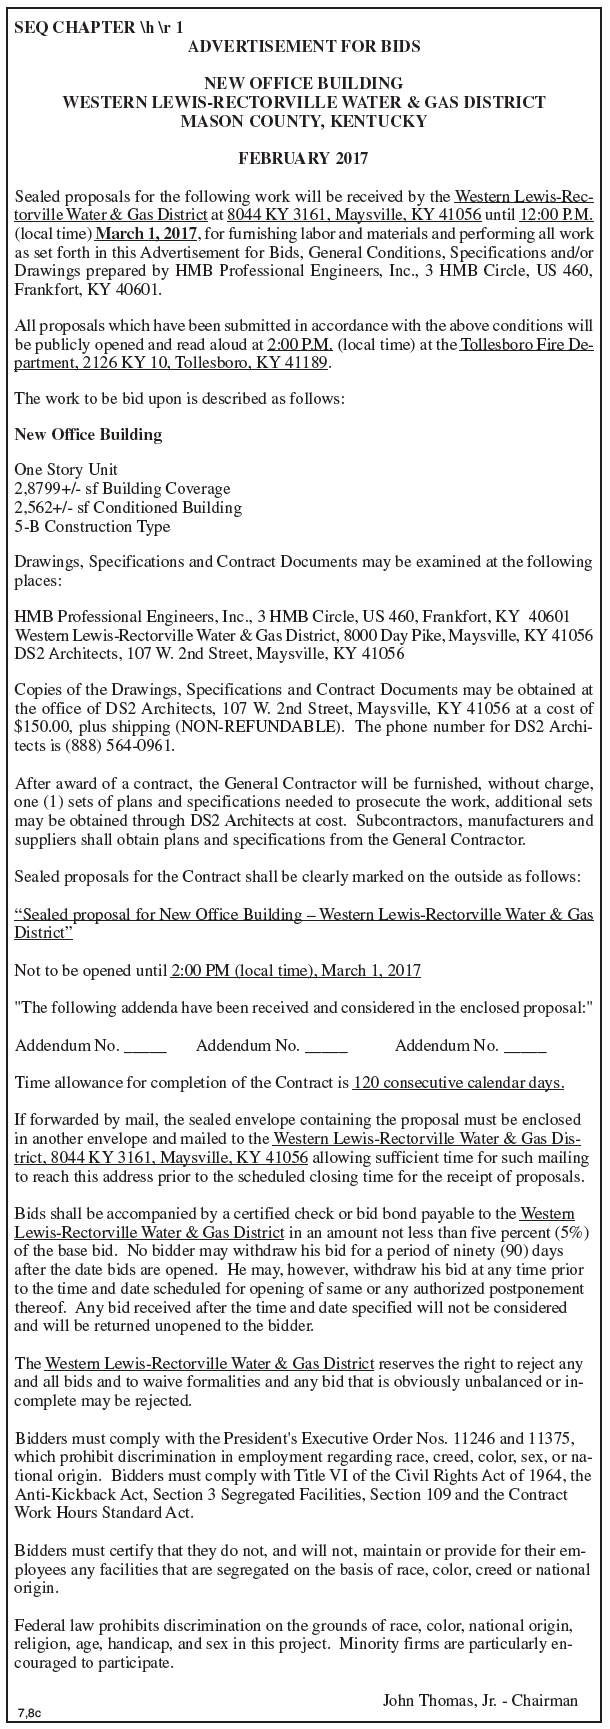 Western Lewis-Rectorville Water & Gas District, Advertisement for Bids